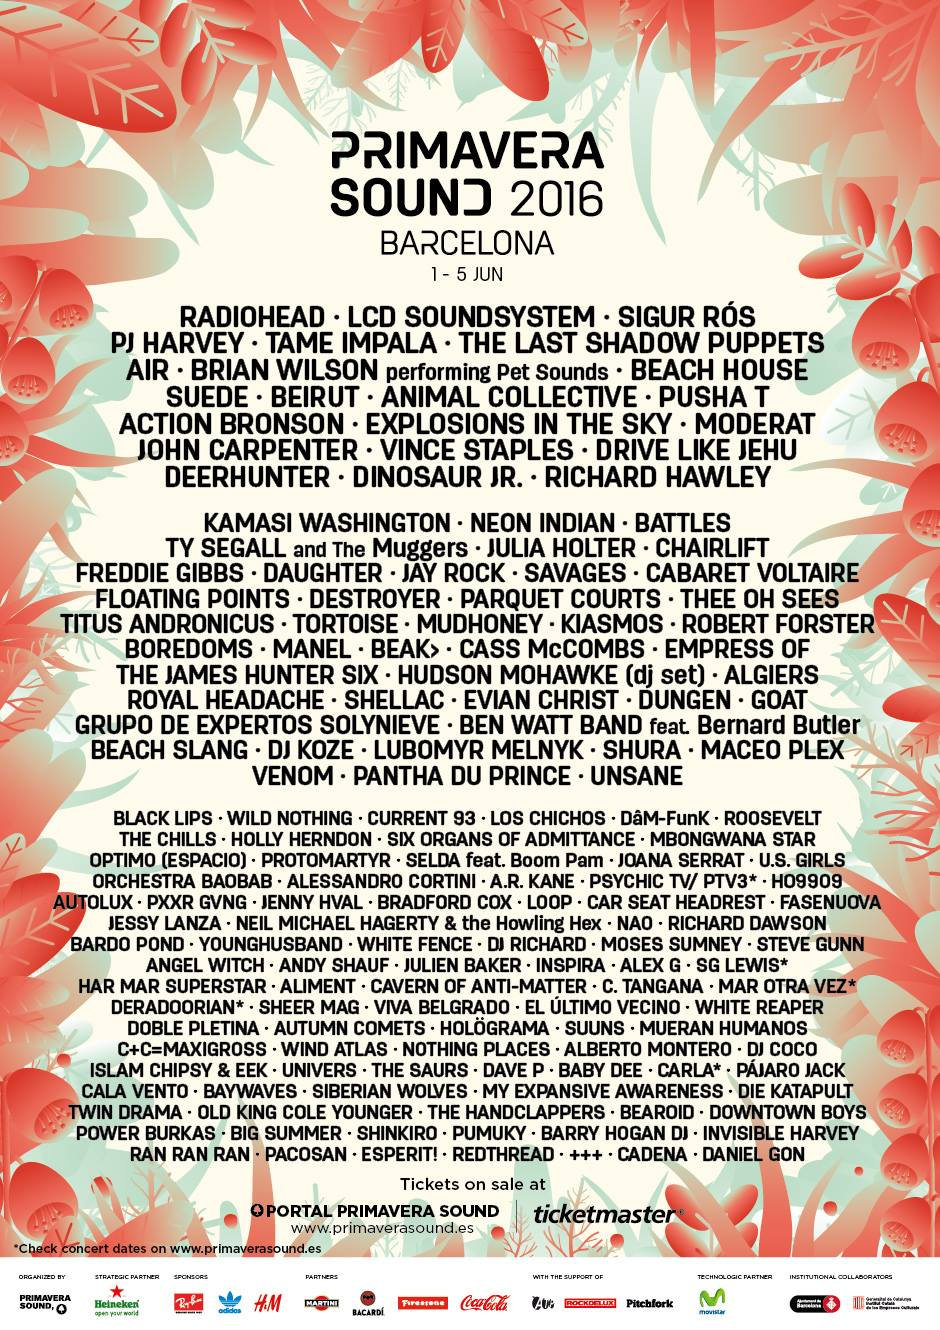 Primavera Sound in Barcelona Lineup